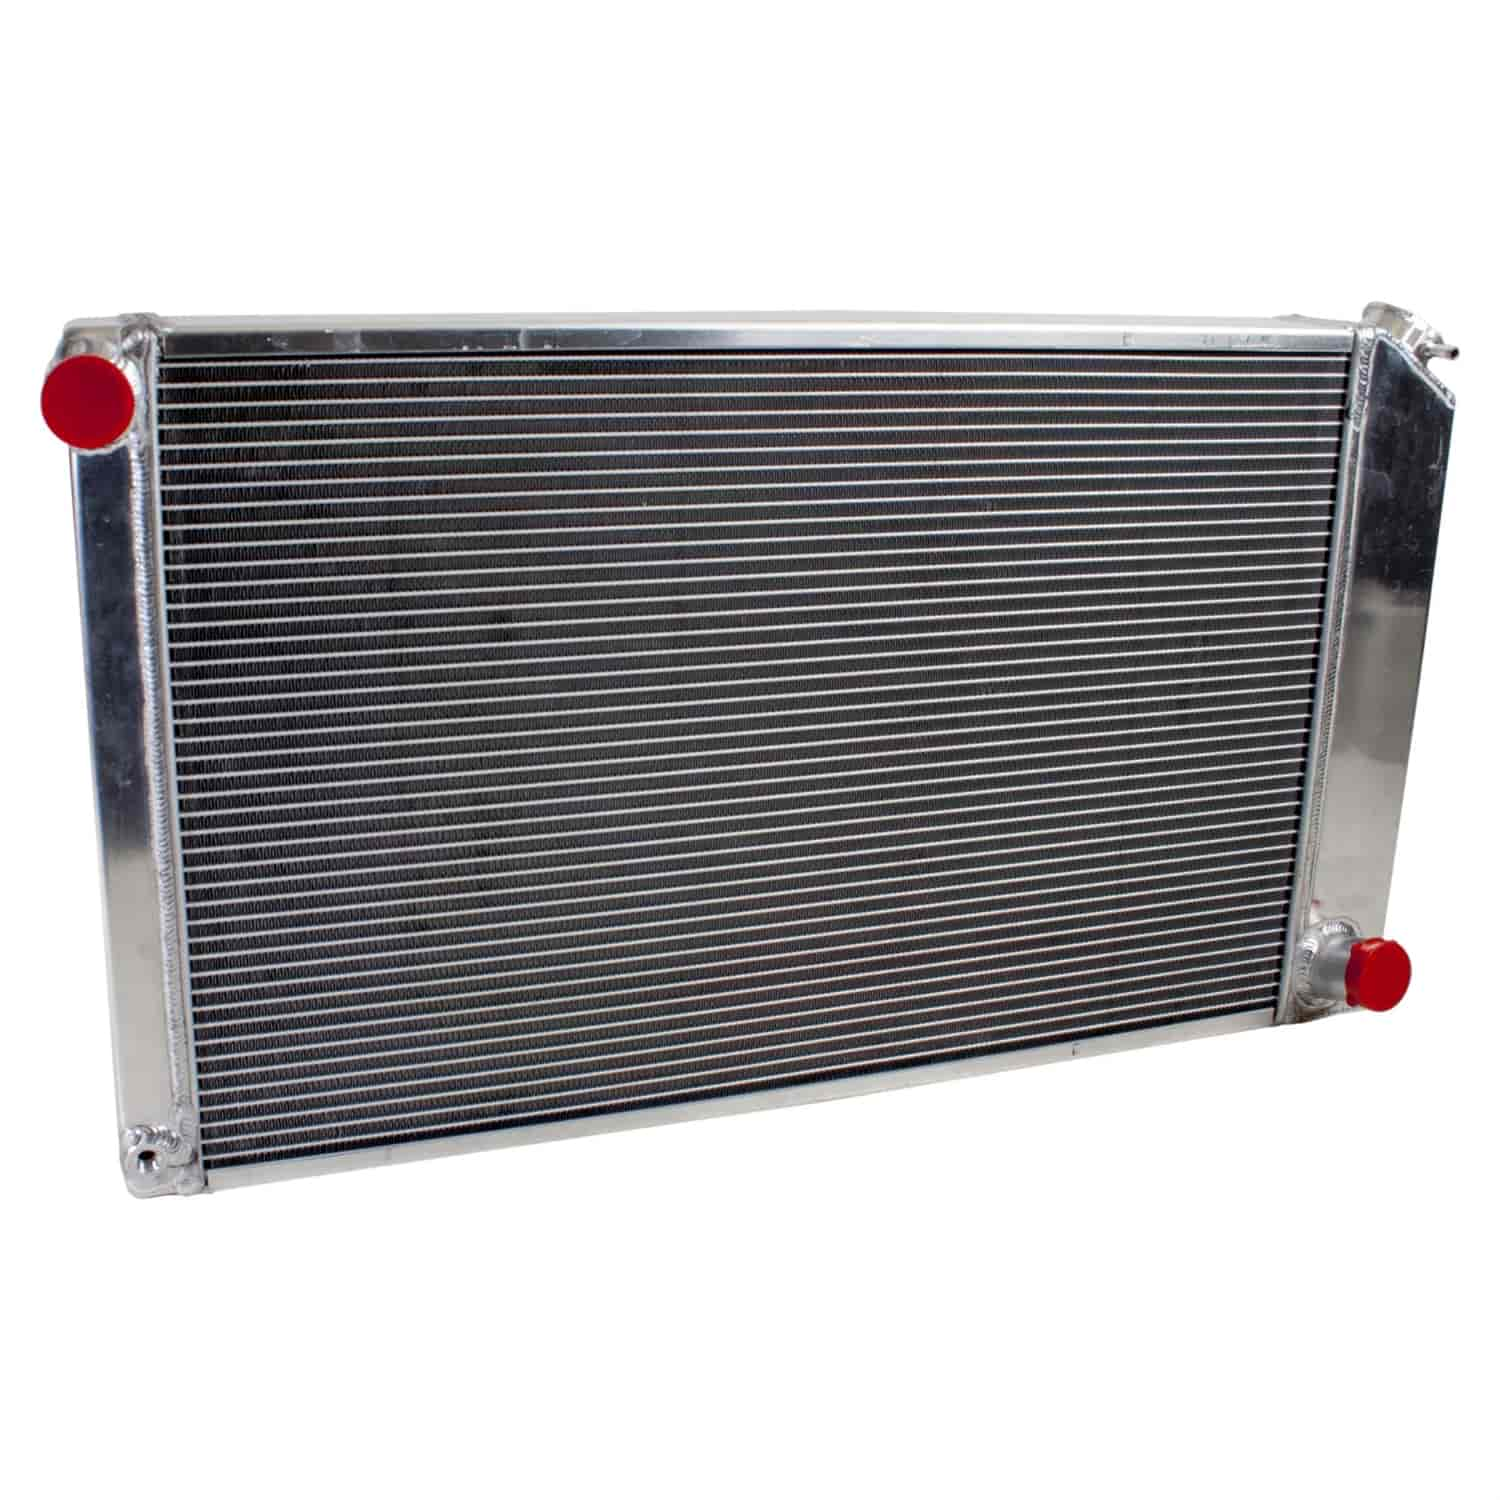 Griffin Radiators 8-00013